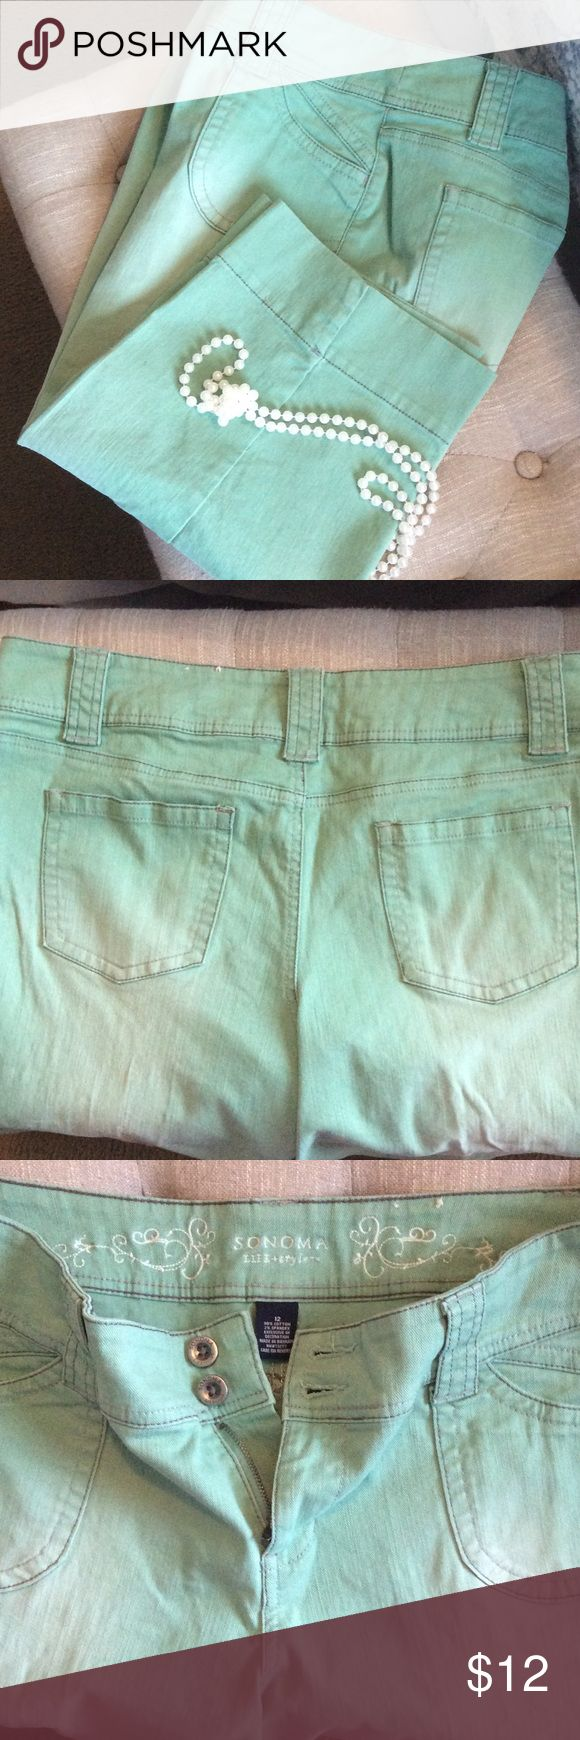 "Sonoma Seafoam Soft Jean Capris 98% cotton and 2% spandex. Very good condition.  They have that worn faded look to them both in the front and back of the Capri.   Kind of soft and Very comfy.  Has pockets in the front and the back.  Approximately 28"" from the top to the bottom of the capris with an inseam of 18"".  When laid flat the waist is 18"" across.  They are not really a light weight Capri.  Color I can best describe as a dark mint or seafoam green.  Have a slit at the end of the legs…"